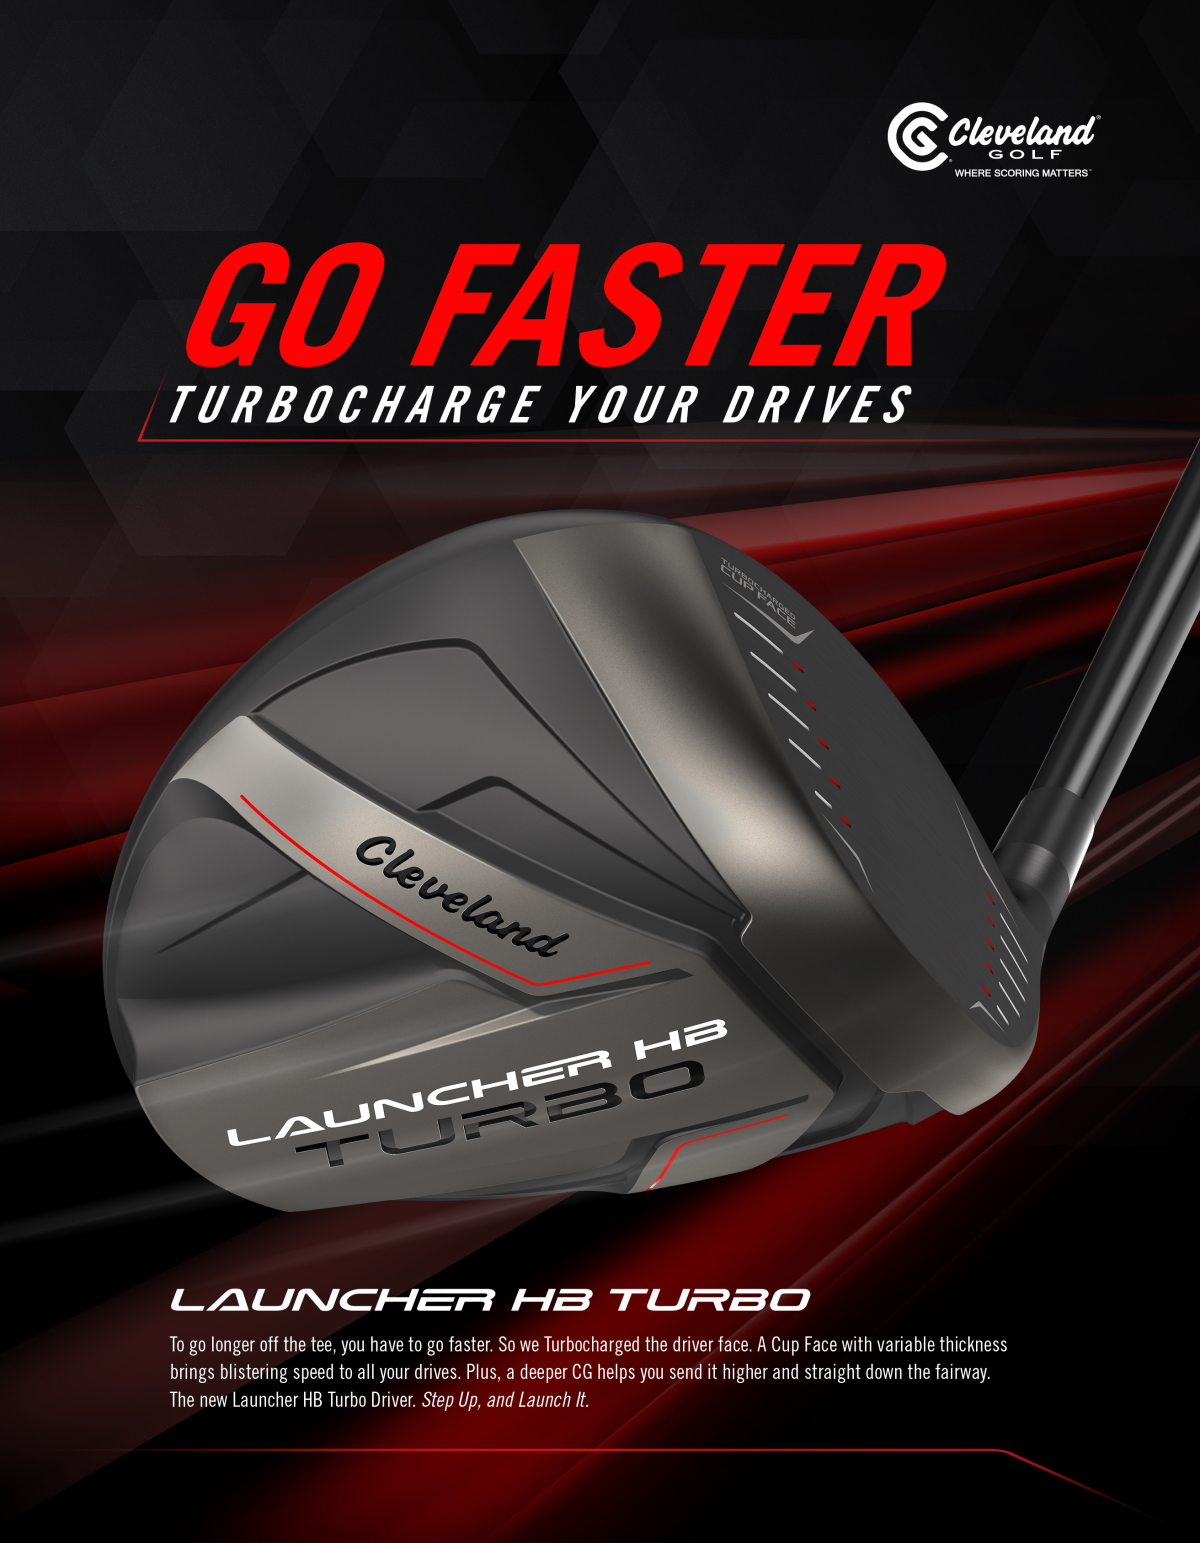 Cleveland Launcher HB Turbo woods sales banner image